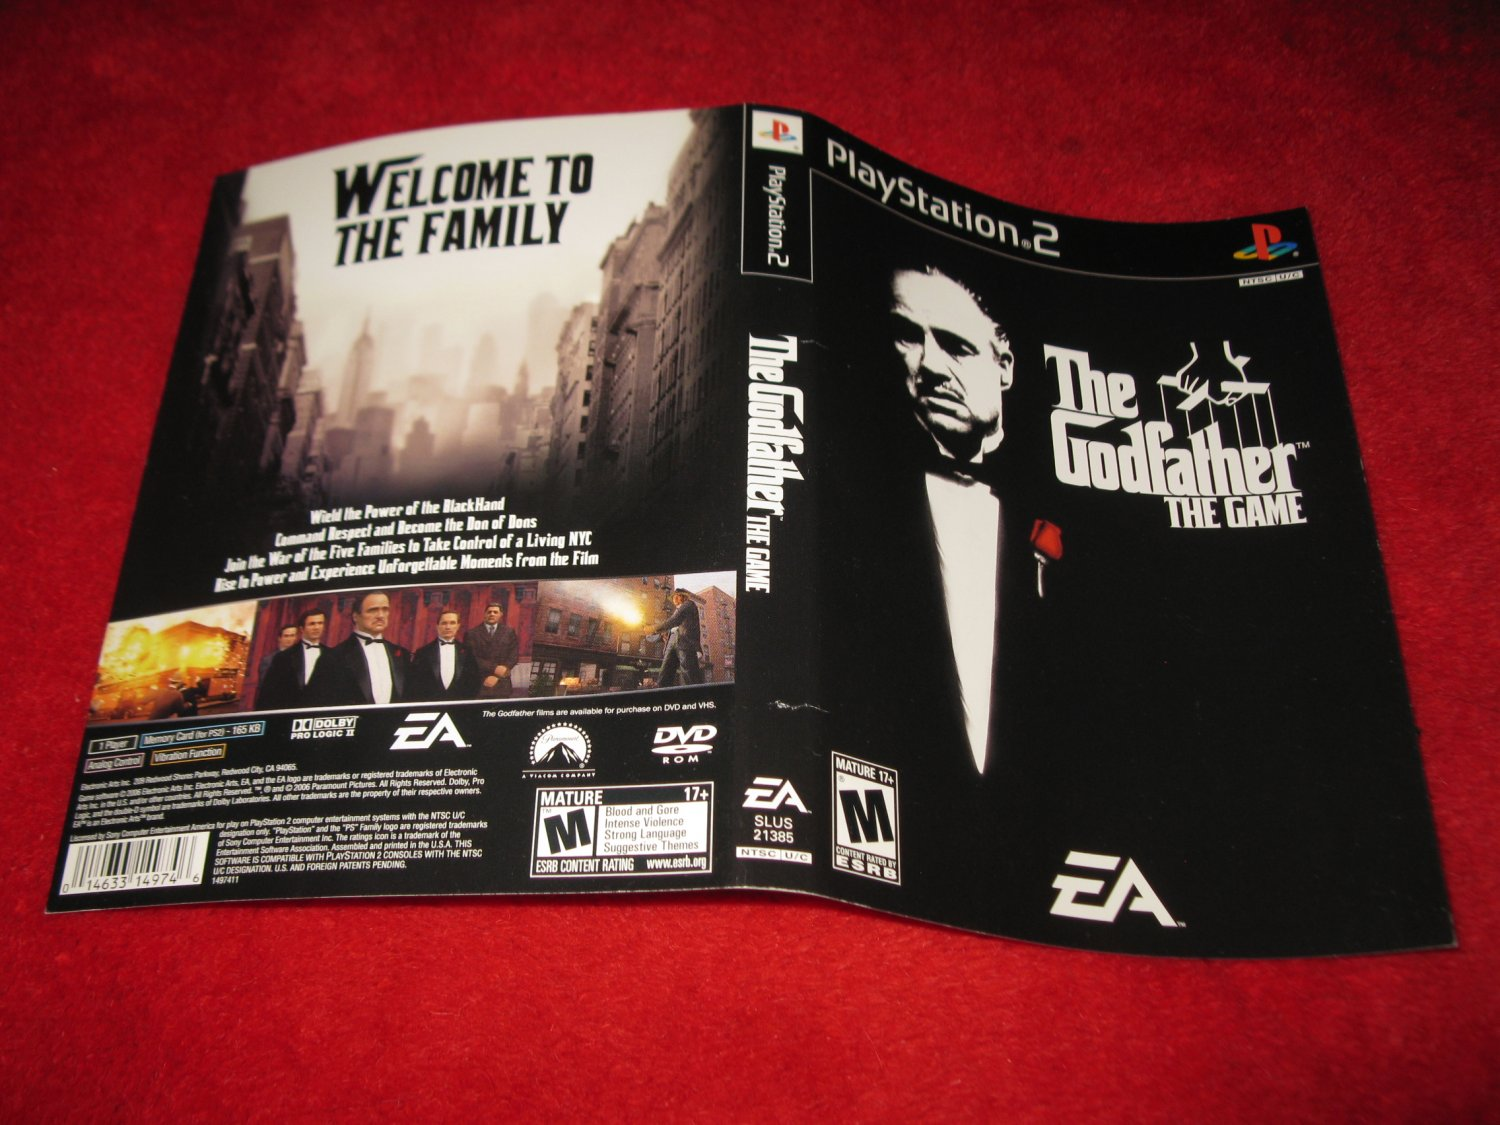 The Godfather : Playstation 2 PS2 Video Game Case Cover Art insert